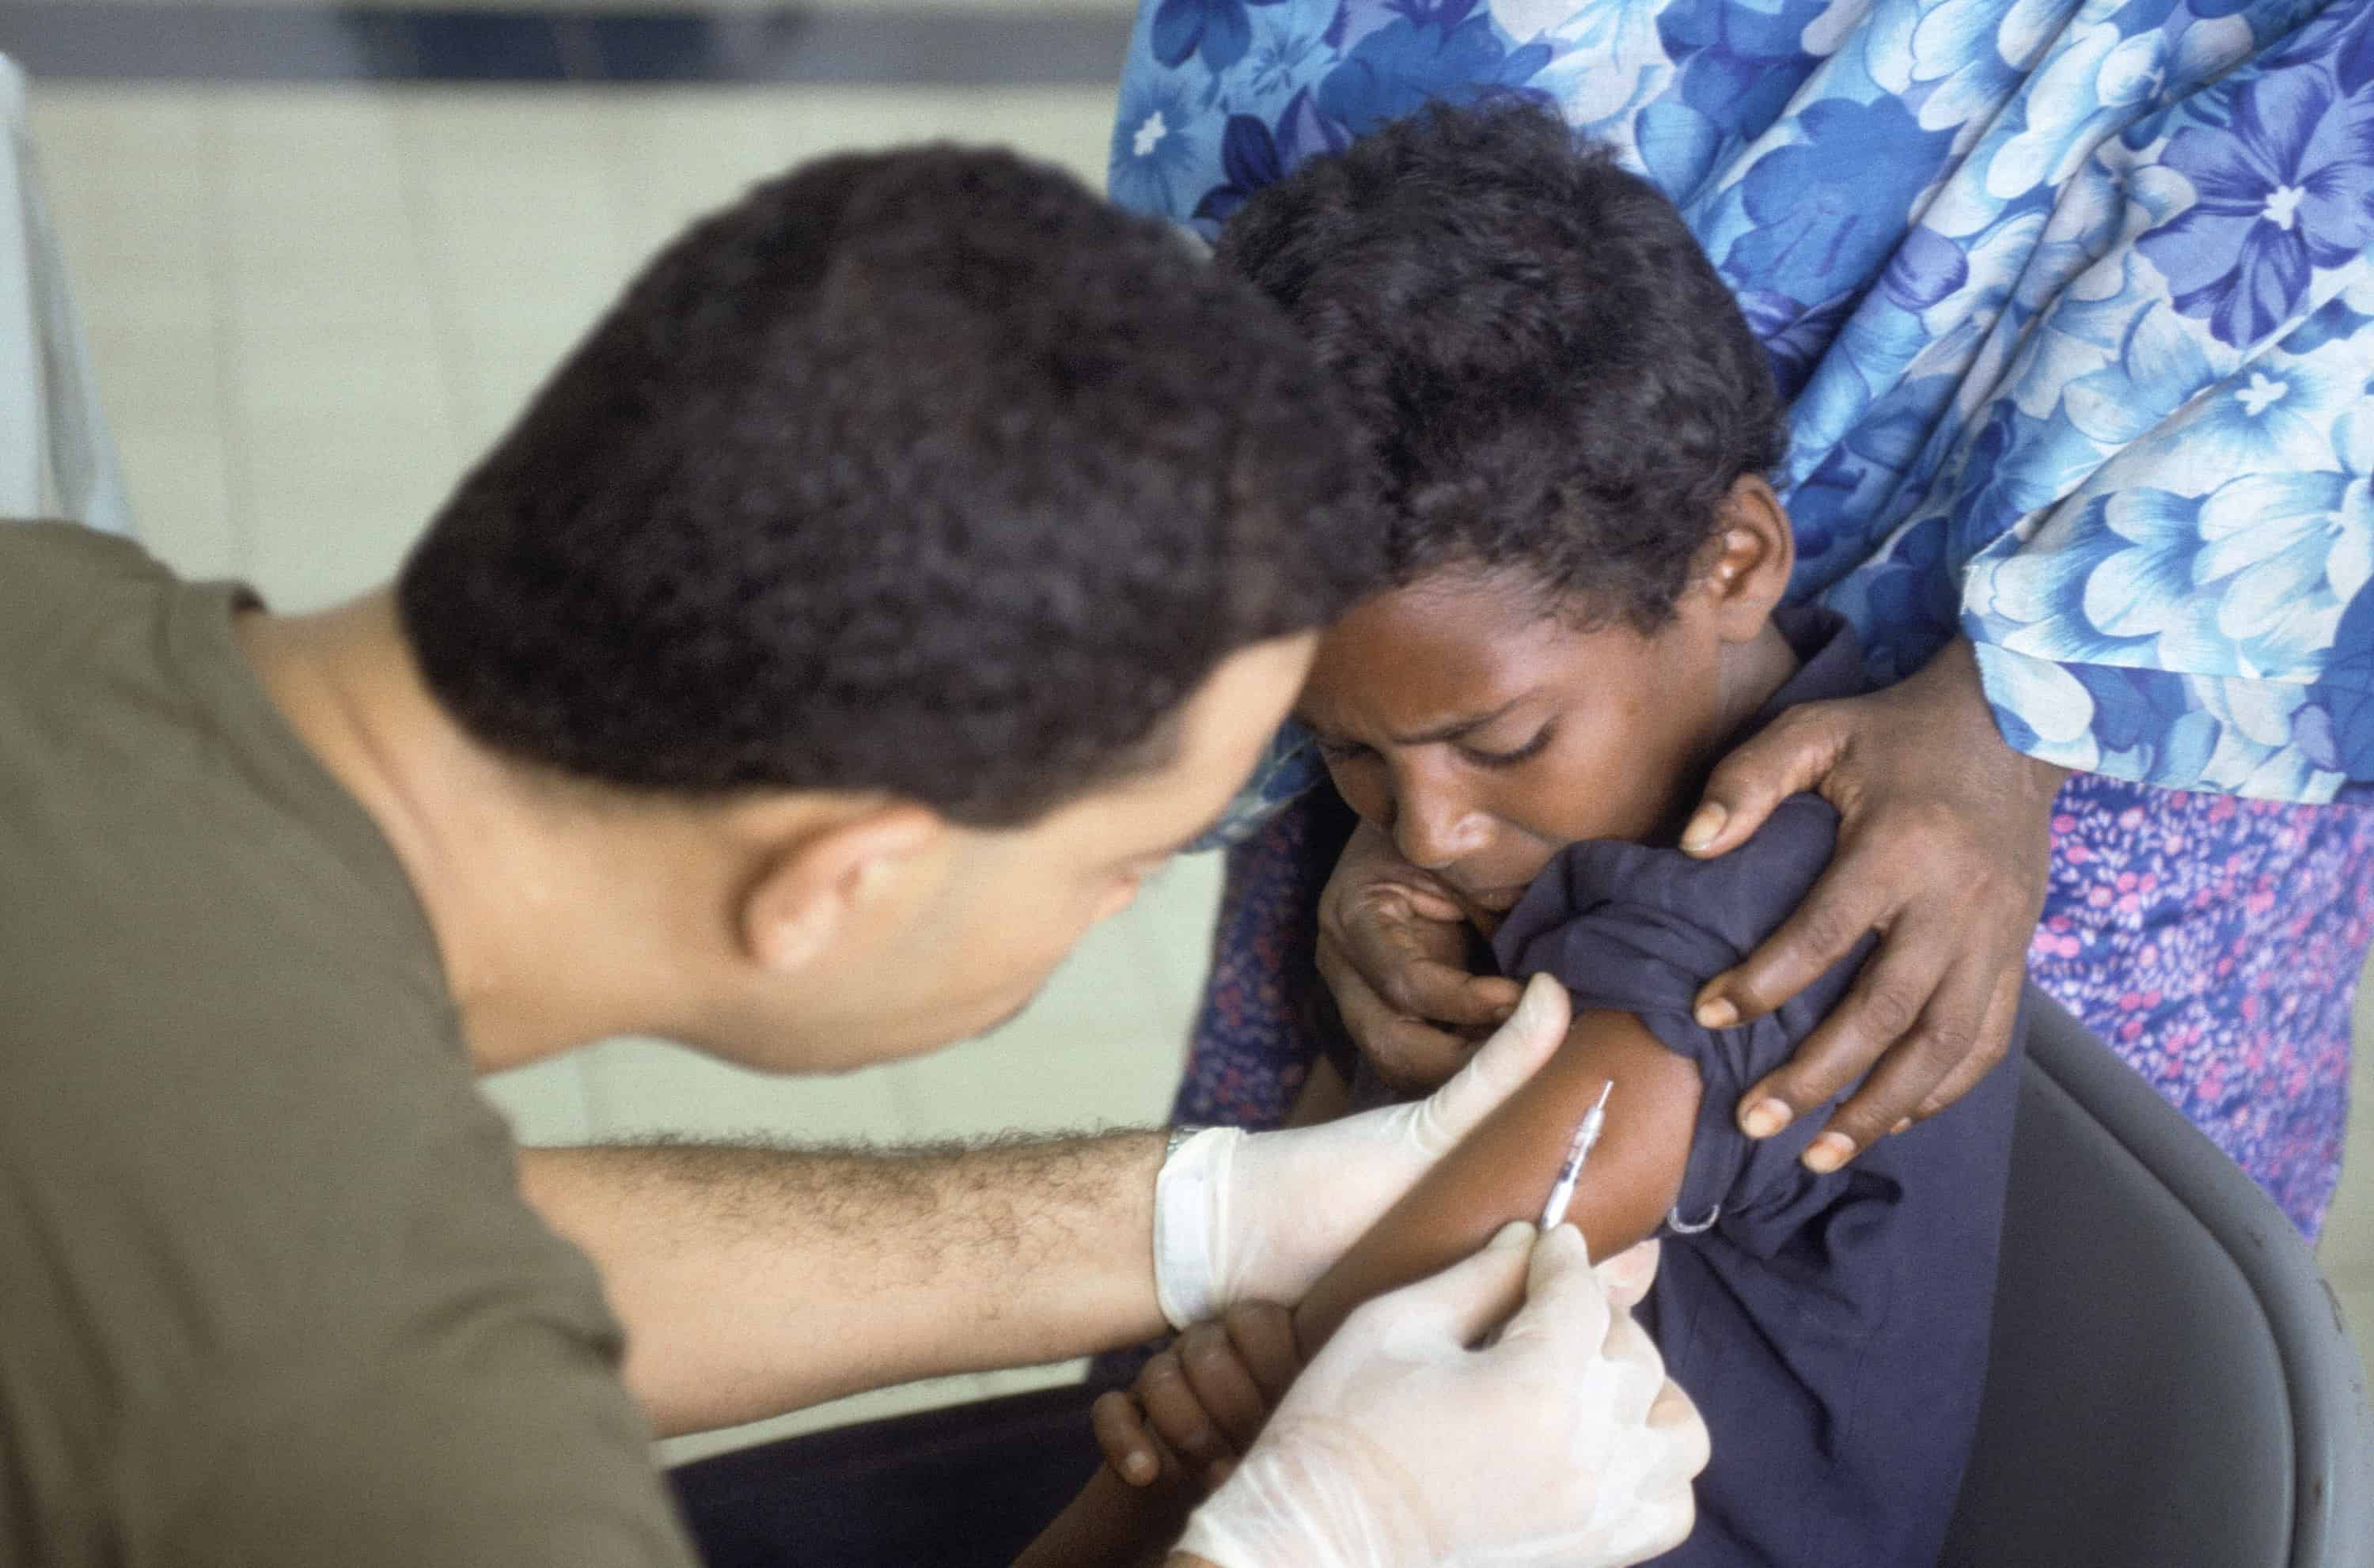 A Somali child receives a polio vaccination at the Tunisian hospital in Mogadishu.  The hospital treat local Somalis' diseases, malnutrition, and other injuries.